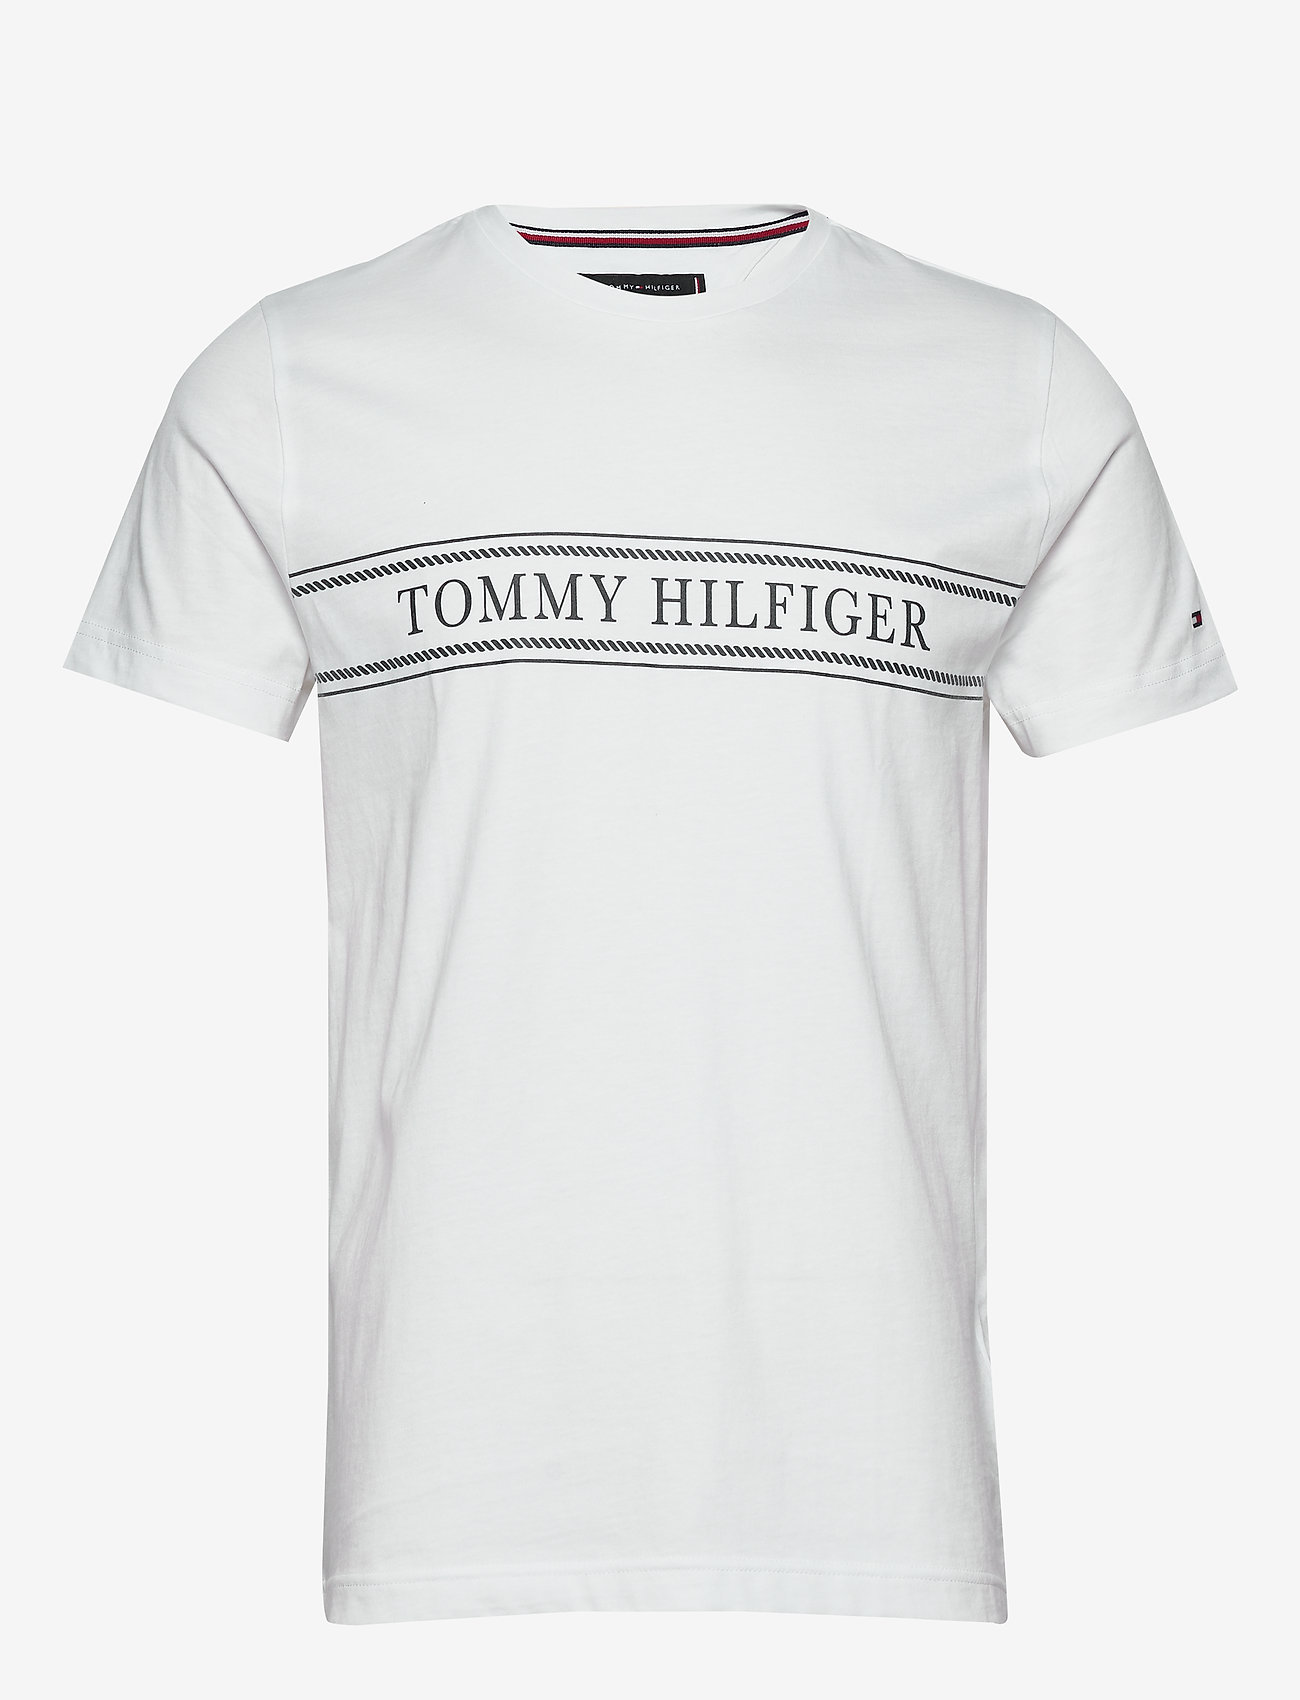 Tommy Hilfiger - ROPE STRIPE TEE - short-sleeved t-shirts - white - 0